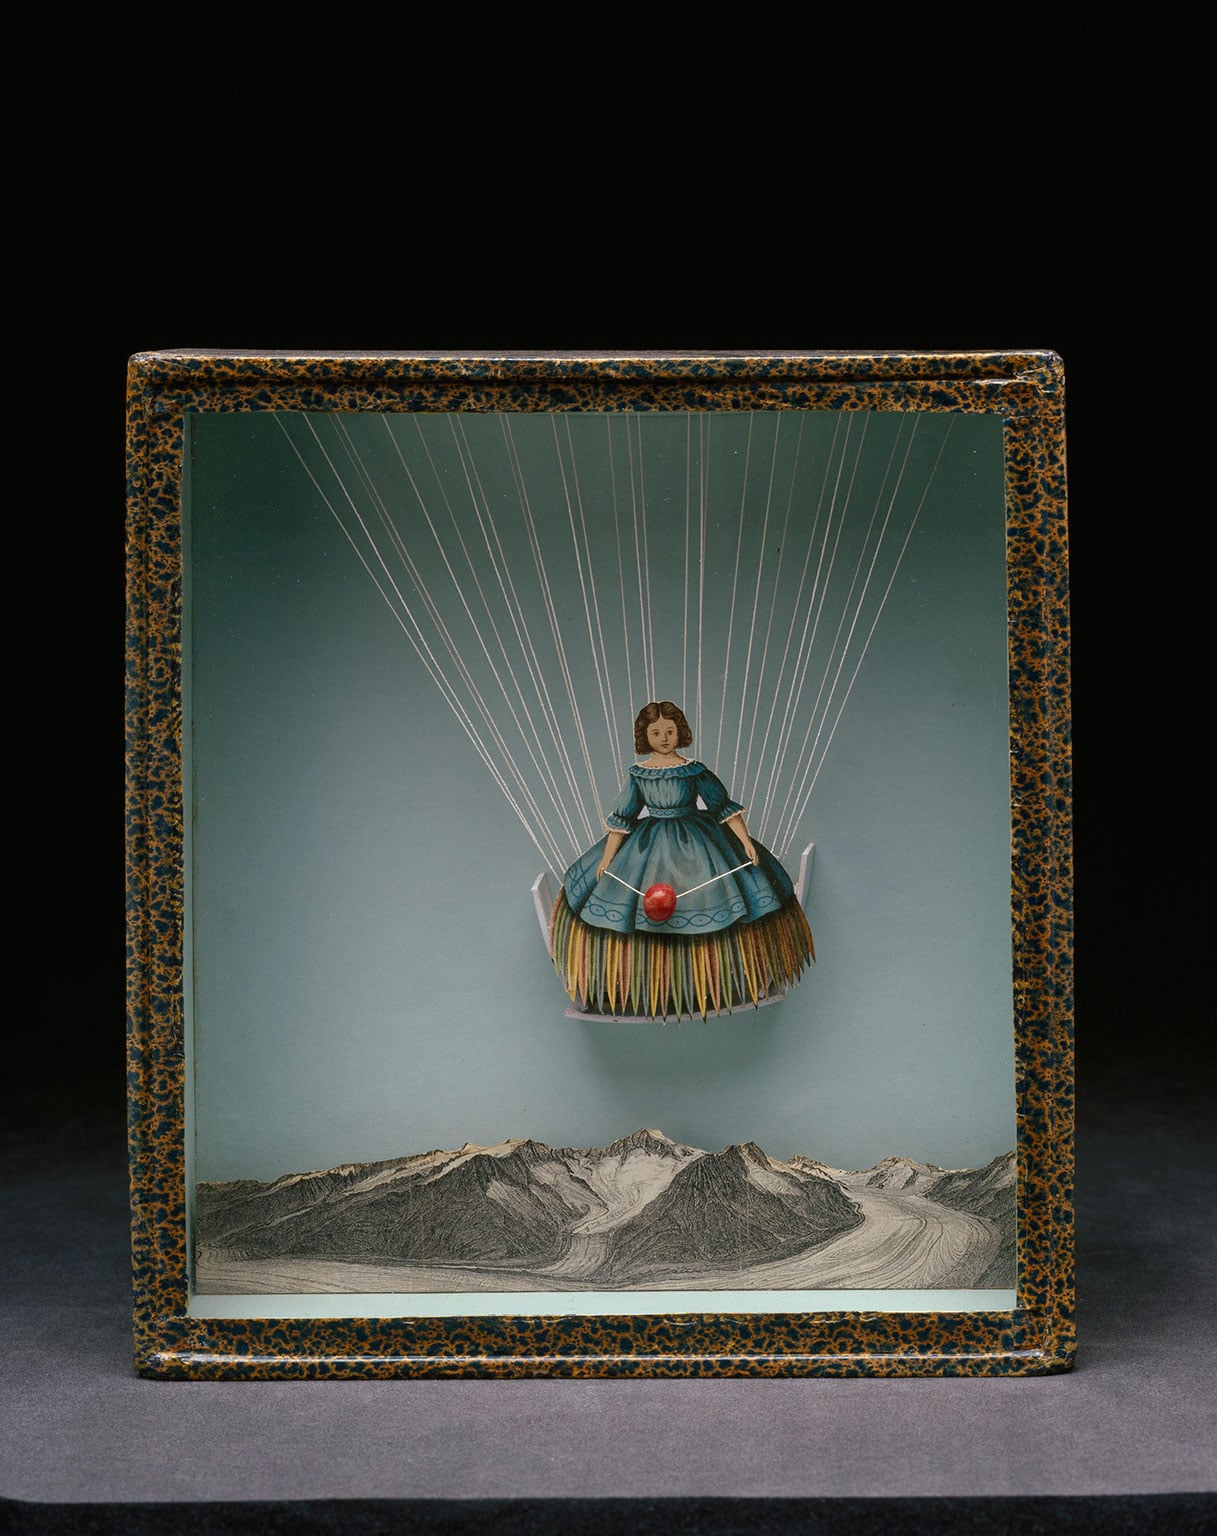 4. Joseph Cornell: Wanderlust, Royal Academy of Arts. Reduced price with the National Art Pass - Tilly Losch, c. 1935 Courtesy of Aimee and Robert Lehrman. Photo Quicksilver Photographers, LLC. © The Joseph and Robert Cornell Memorial Foundation/VAGA, NY/DACS, London 2015